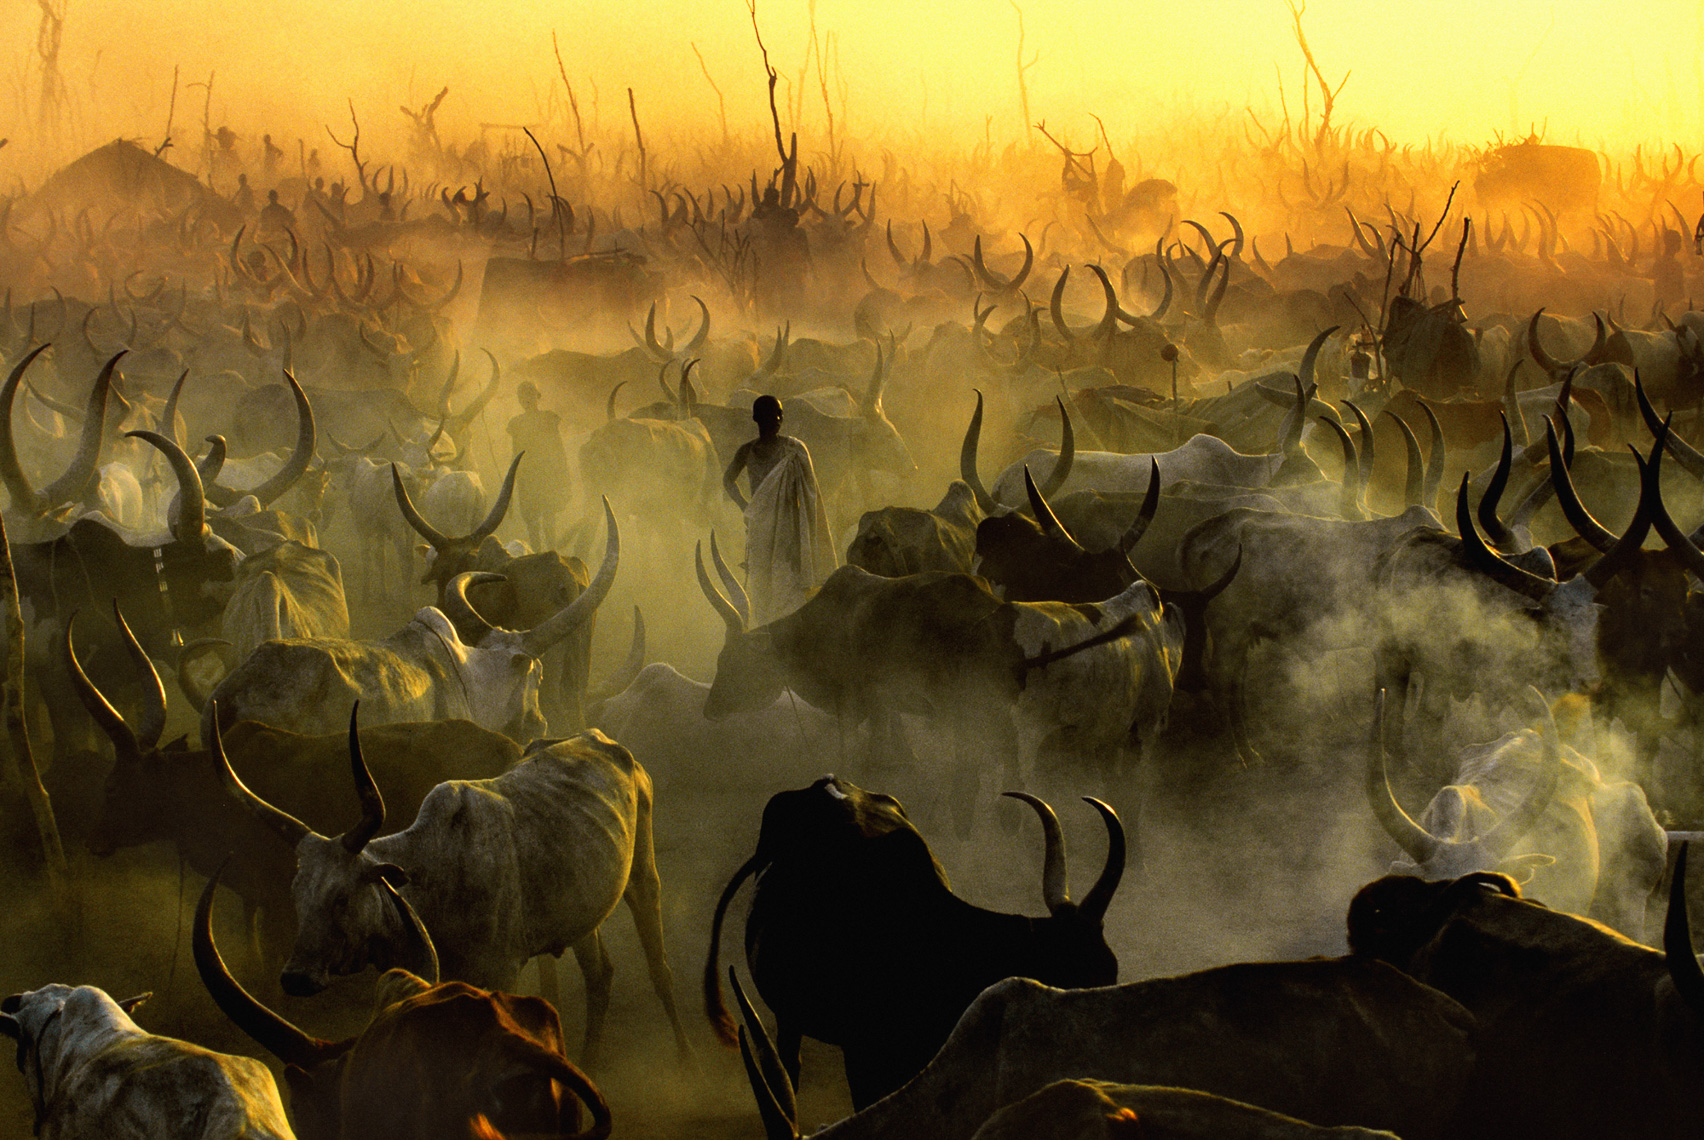 Dinka Cattle Camp at Sunset, South Sudan